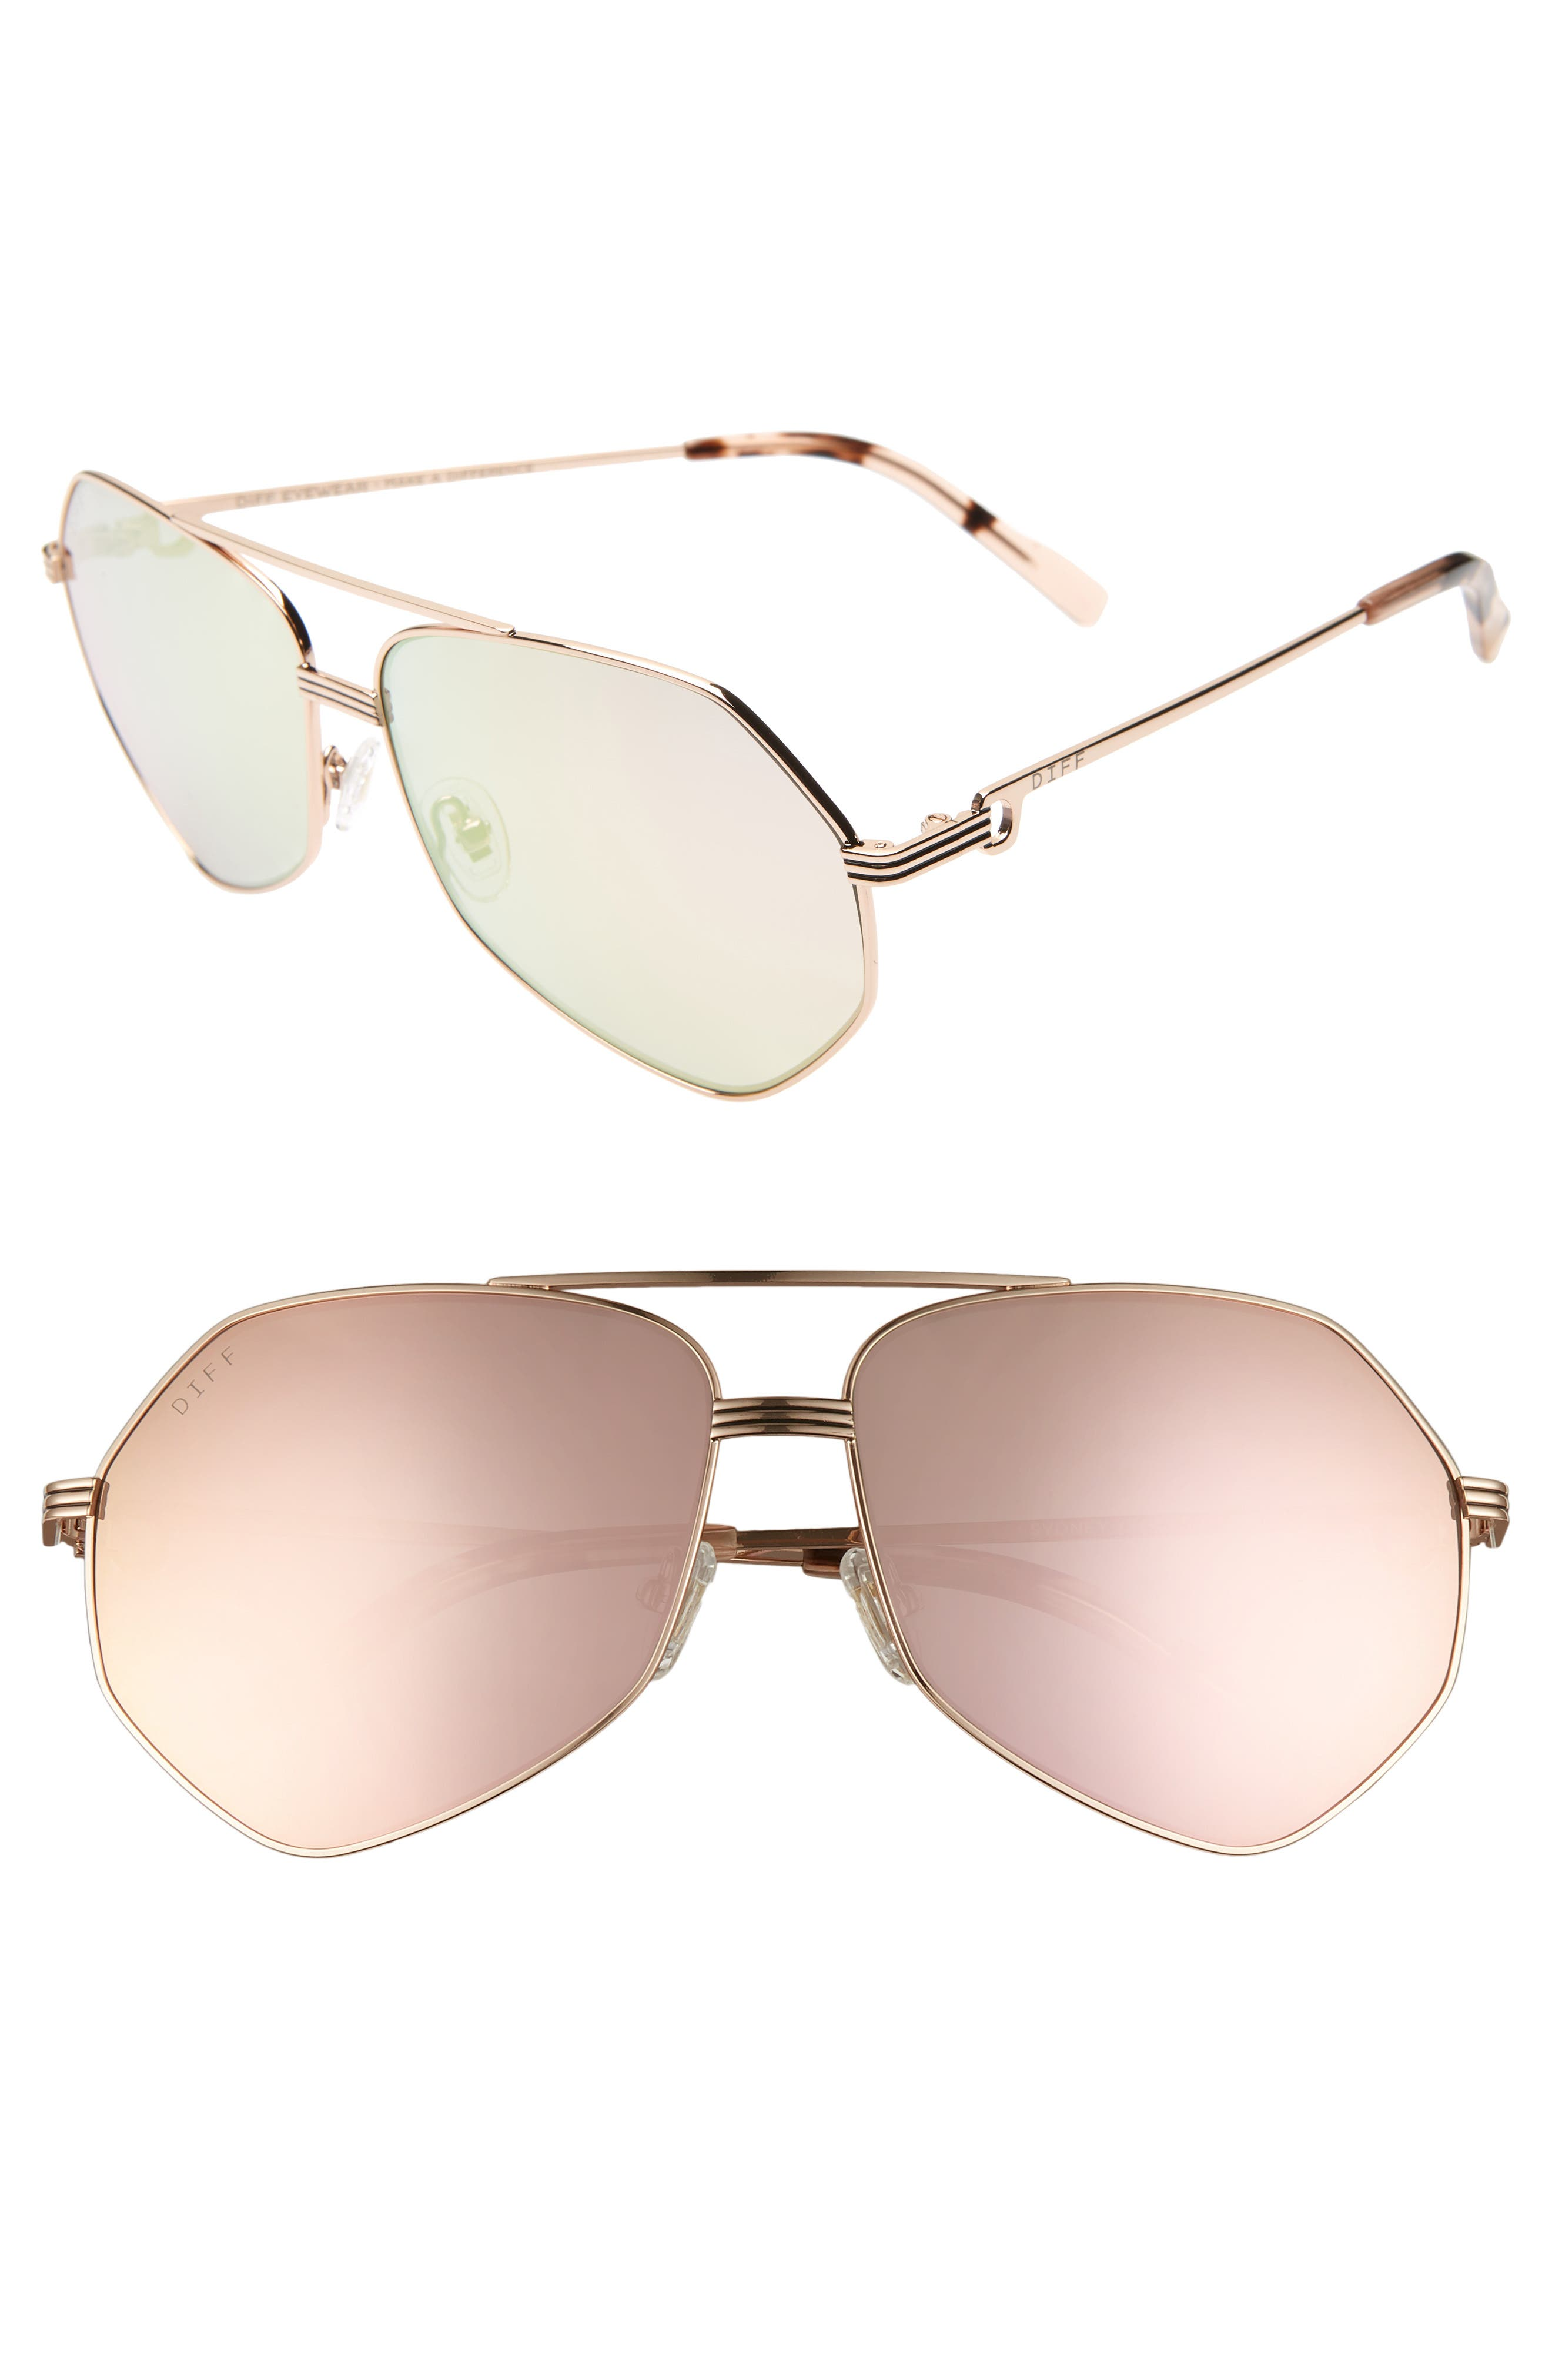 Sydney 62mm Polarized Aviator Sunglasses,                         Main,                         color, GOLD/ HIMALAYAN/ CHAMPAGNE